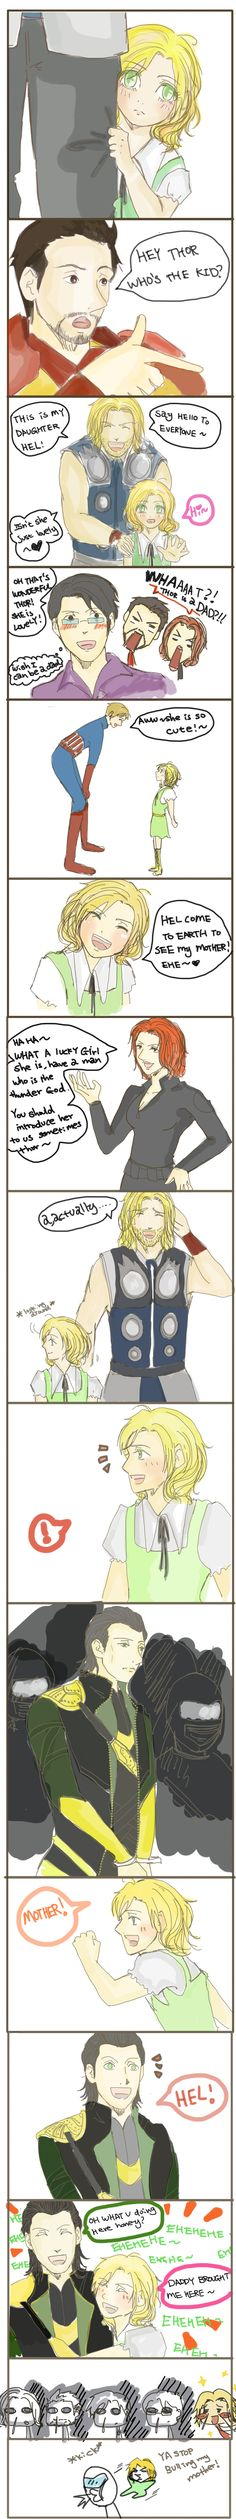 if thor n loki already have -- in the avengers... Hel doesn't look like this at all, but what a cute comic!